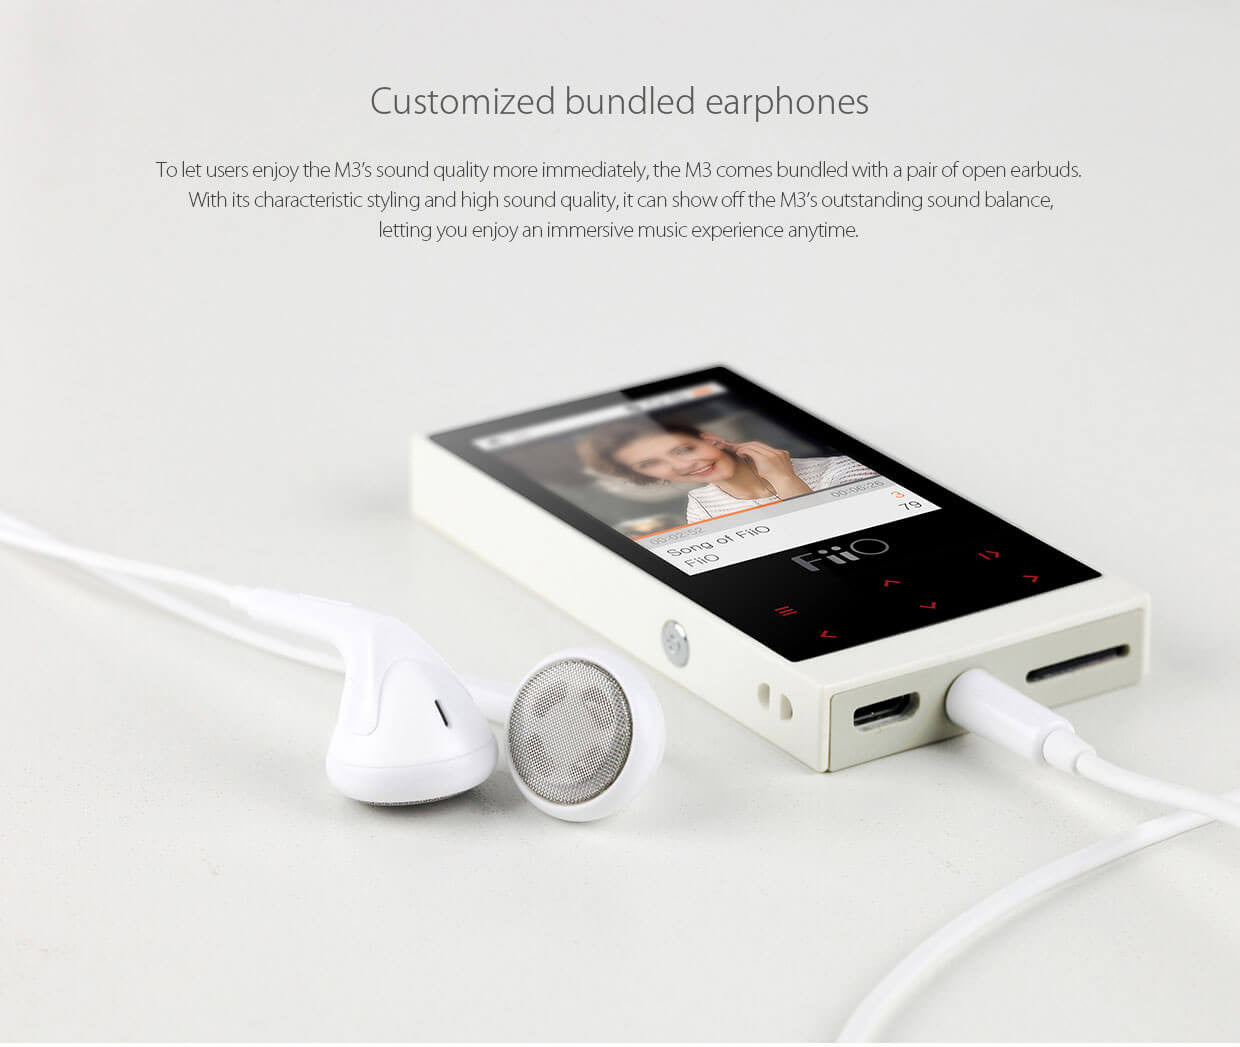 fiio-m3-earphones